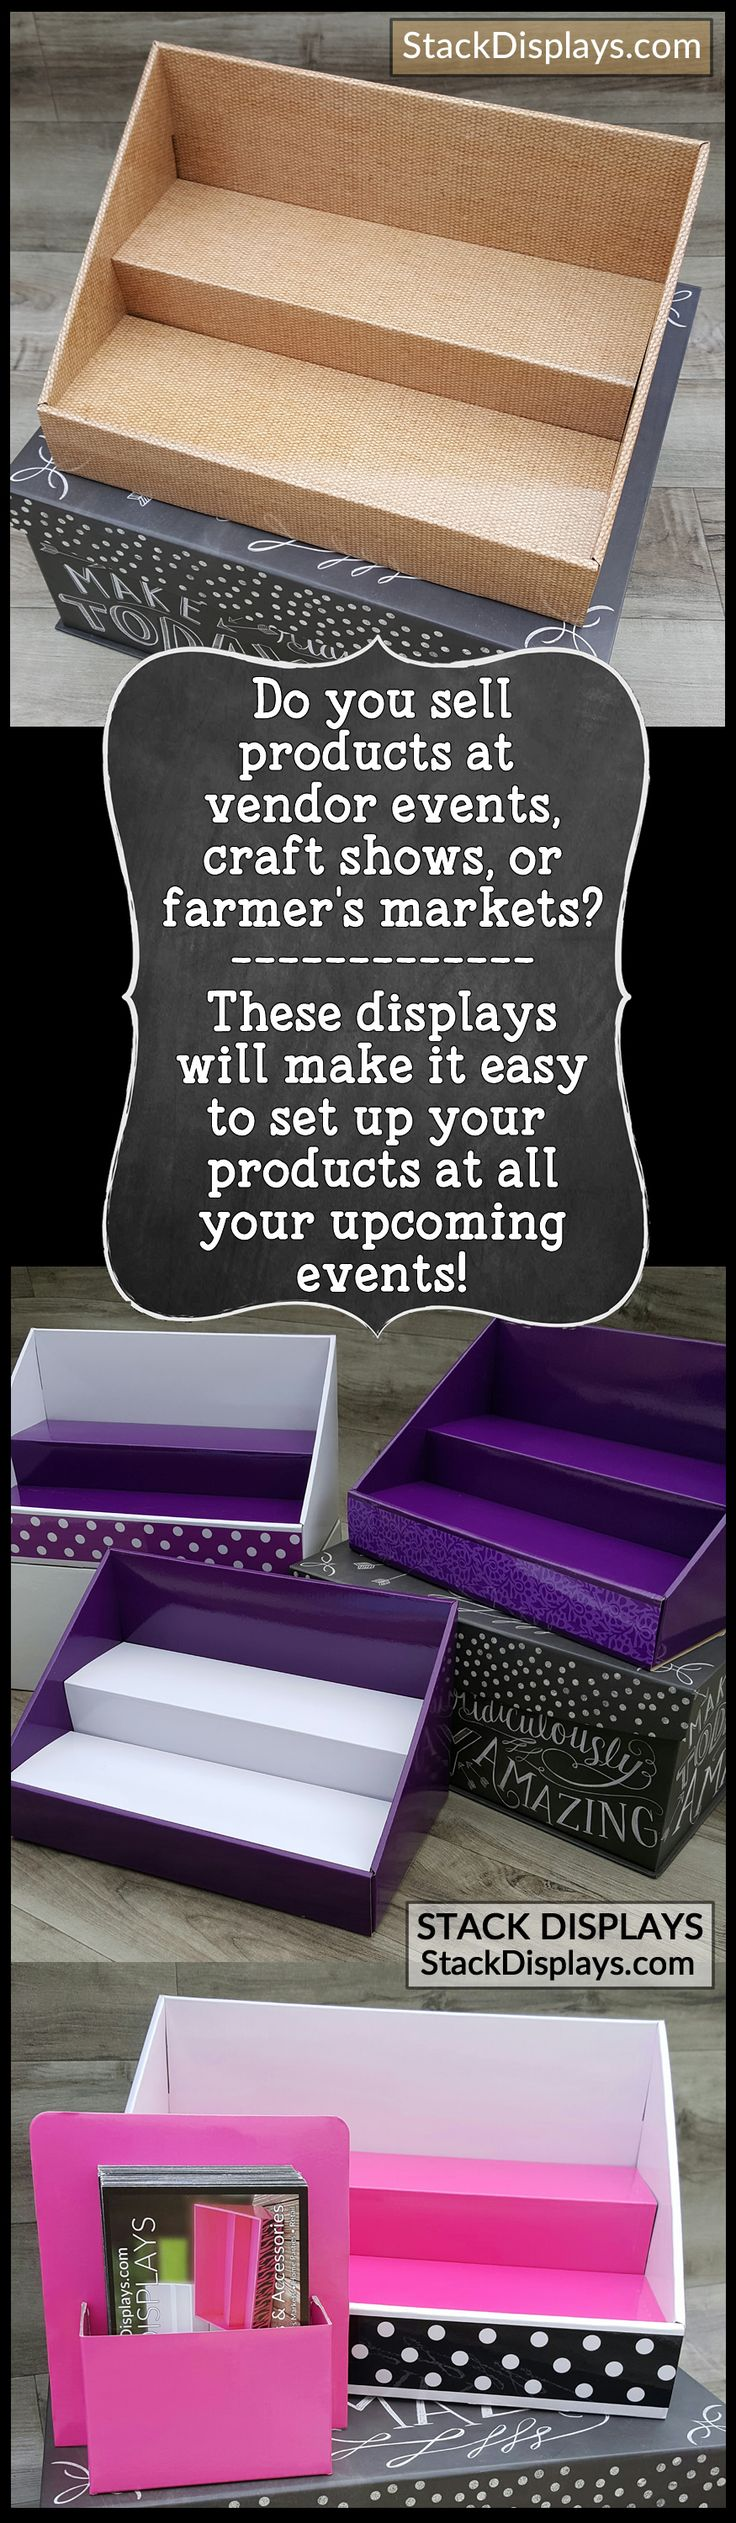 Are you a Direct Sales Consultant? Do you sell products from Perfectly Posh, Pure Romance, Pink Zebra, Scentsy, Younique Makeup, Jamberry Nails, Tastefully Simple, Avon, Mary Kay or Avon? Do you set up your products at vendor events or craft shows? These displays are perfect for you! Easy to set up and transport and will match your company colors!